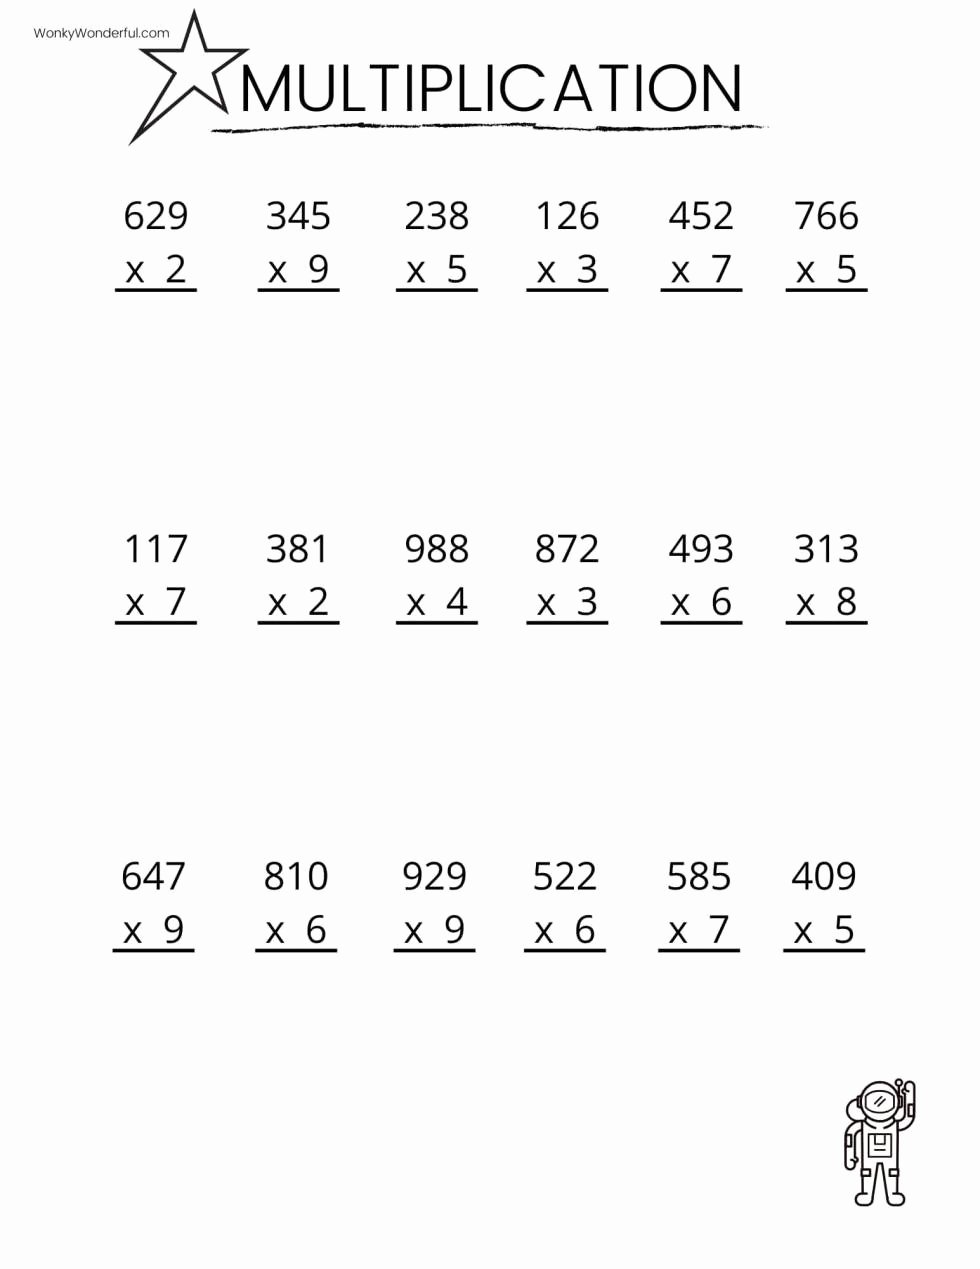 Free Multiplication Worksheets Lovely Free Printable Multiplication Worksheets Wonkywonderful